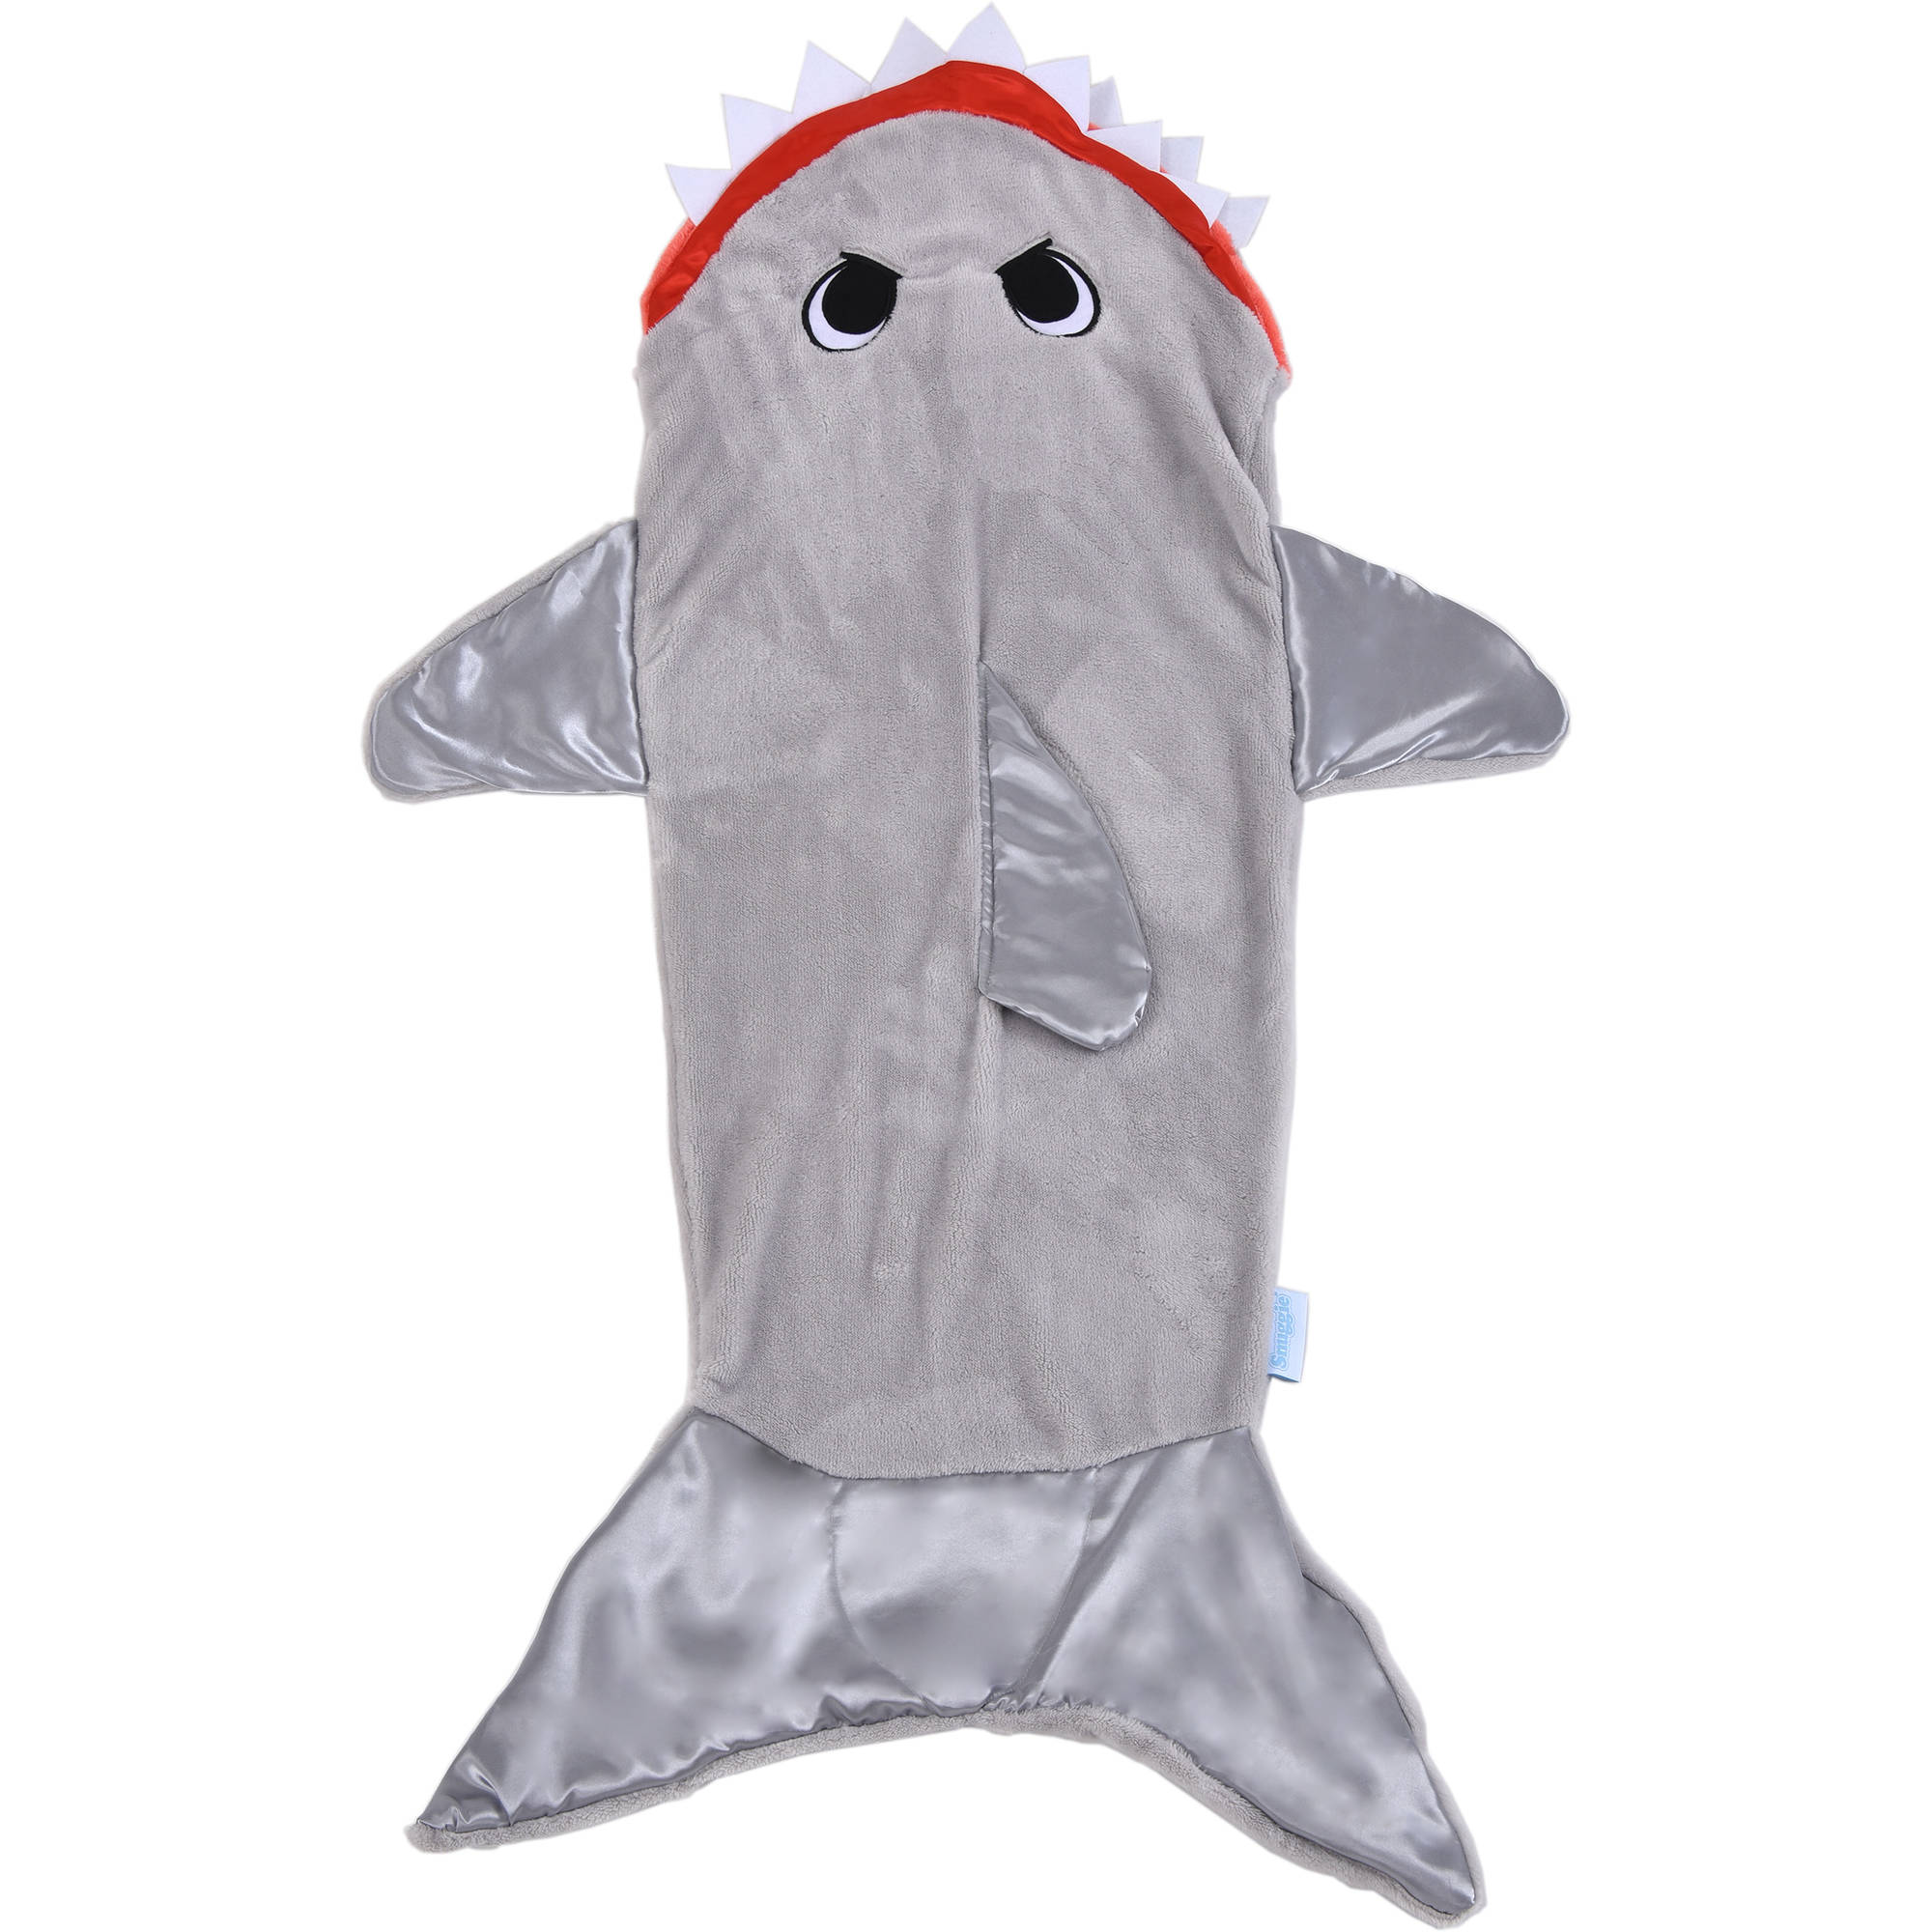 As Seen On TV! Snuggie Tails, Shark Blanket! by Generic